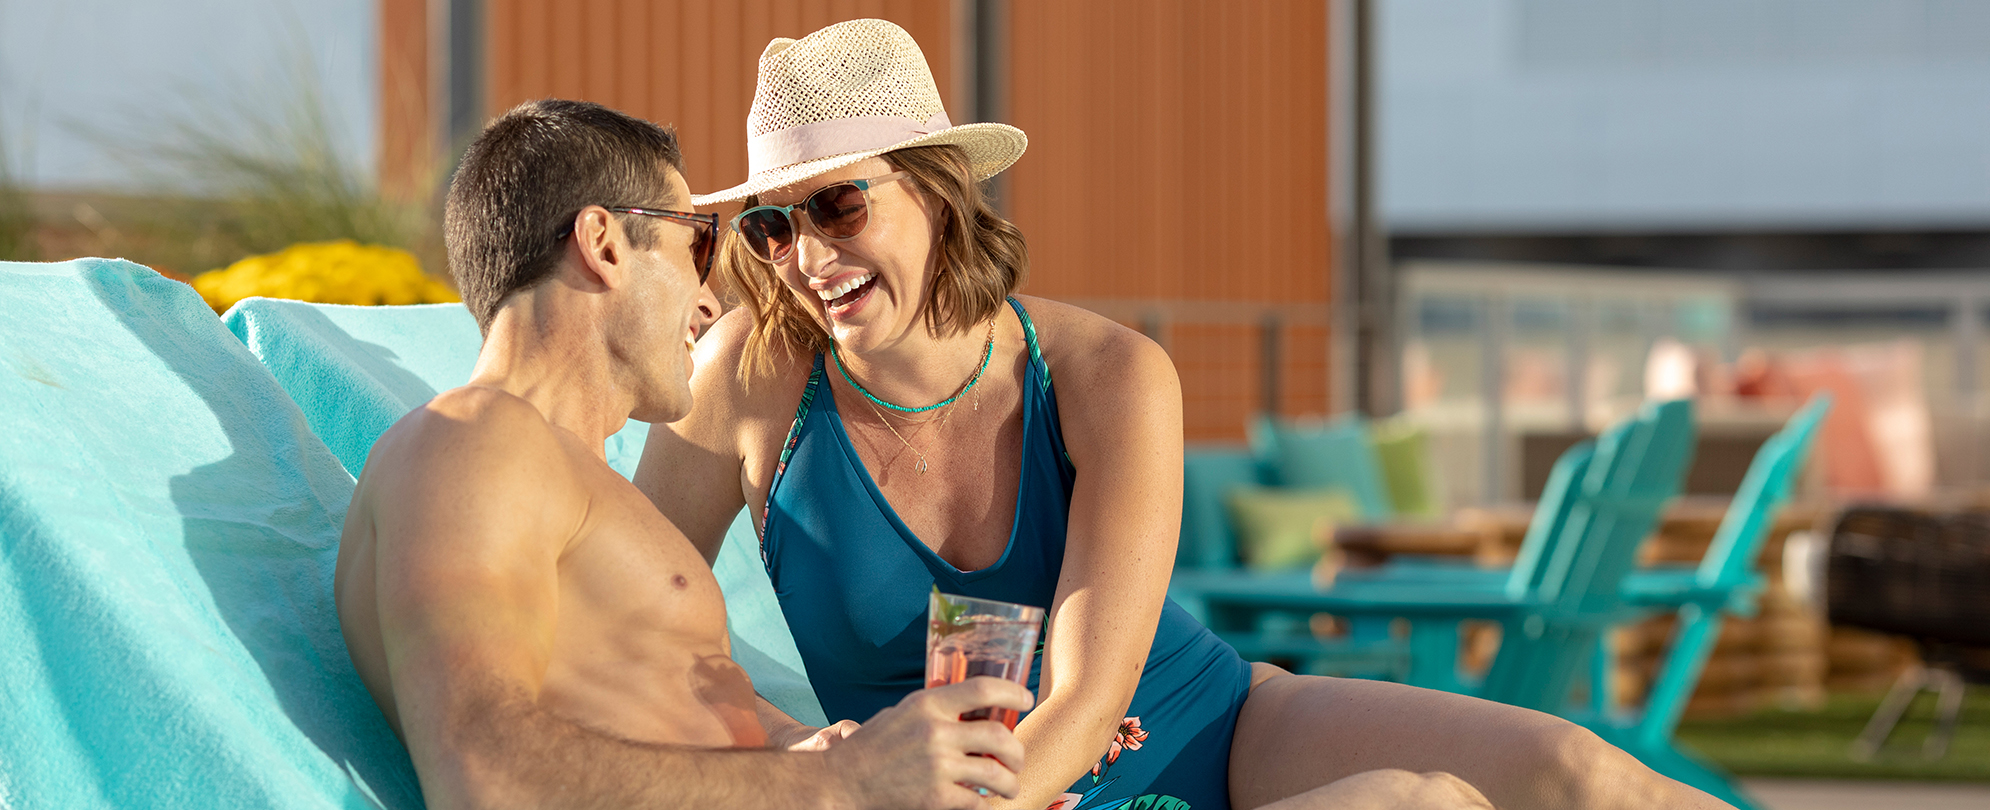 Man and woman wearing sunglasses laugh and drink by the pool at a Margaritaville Vacation Club resort.